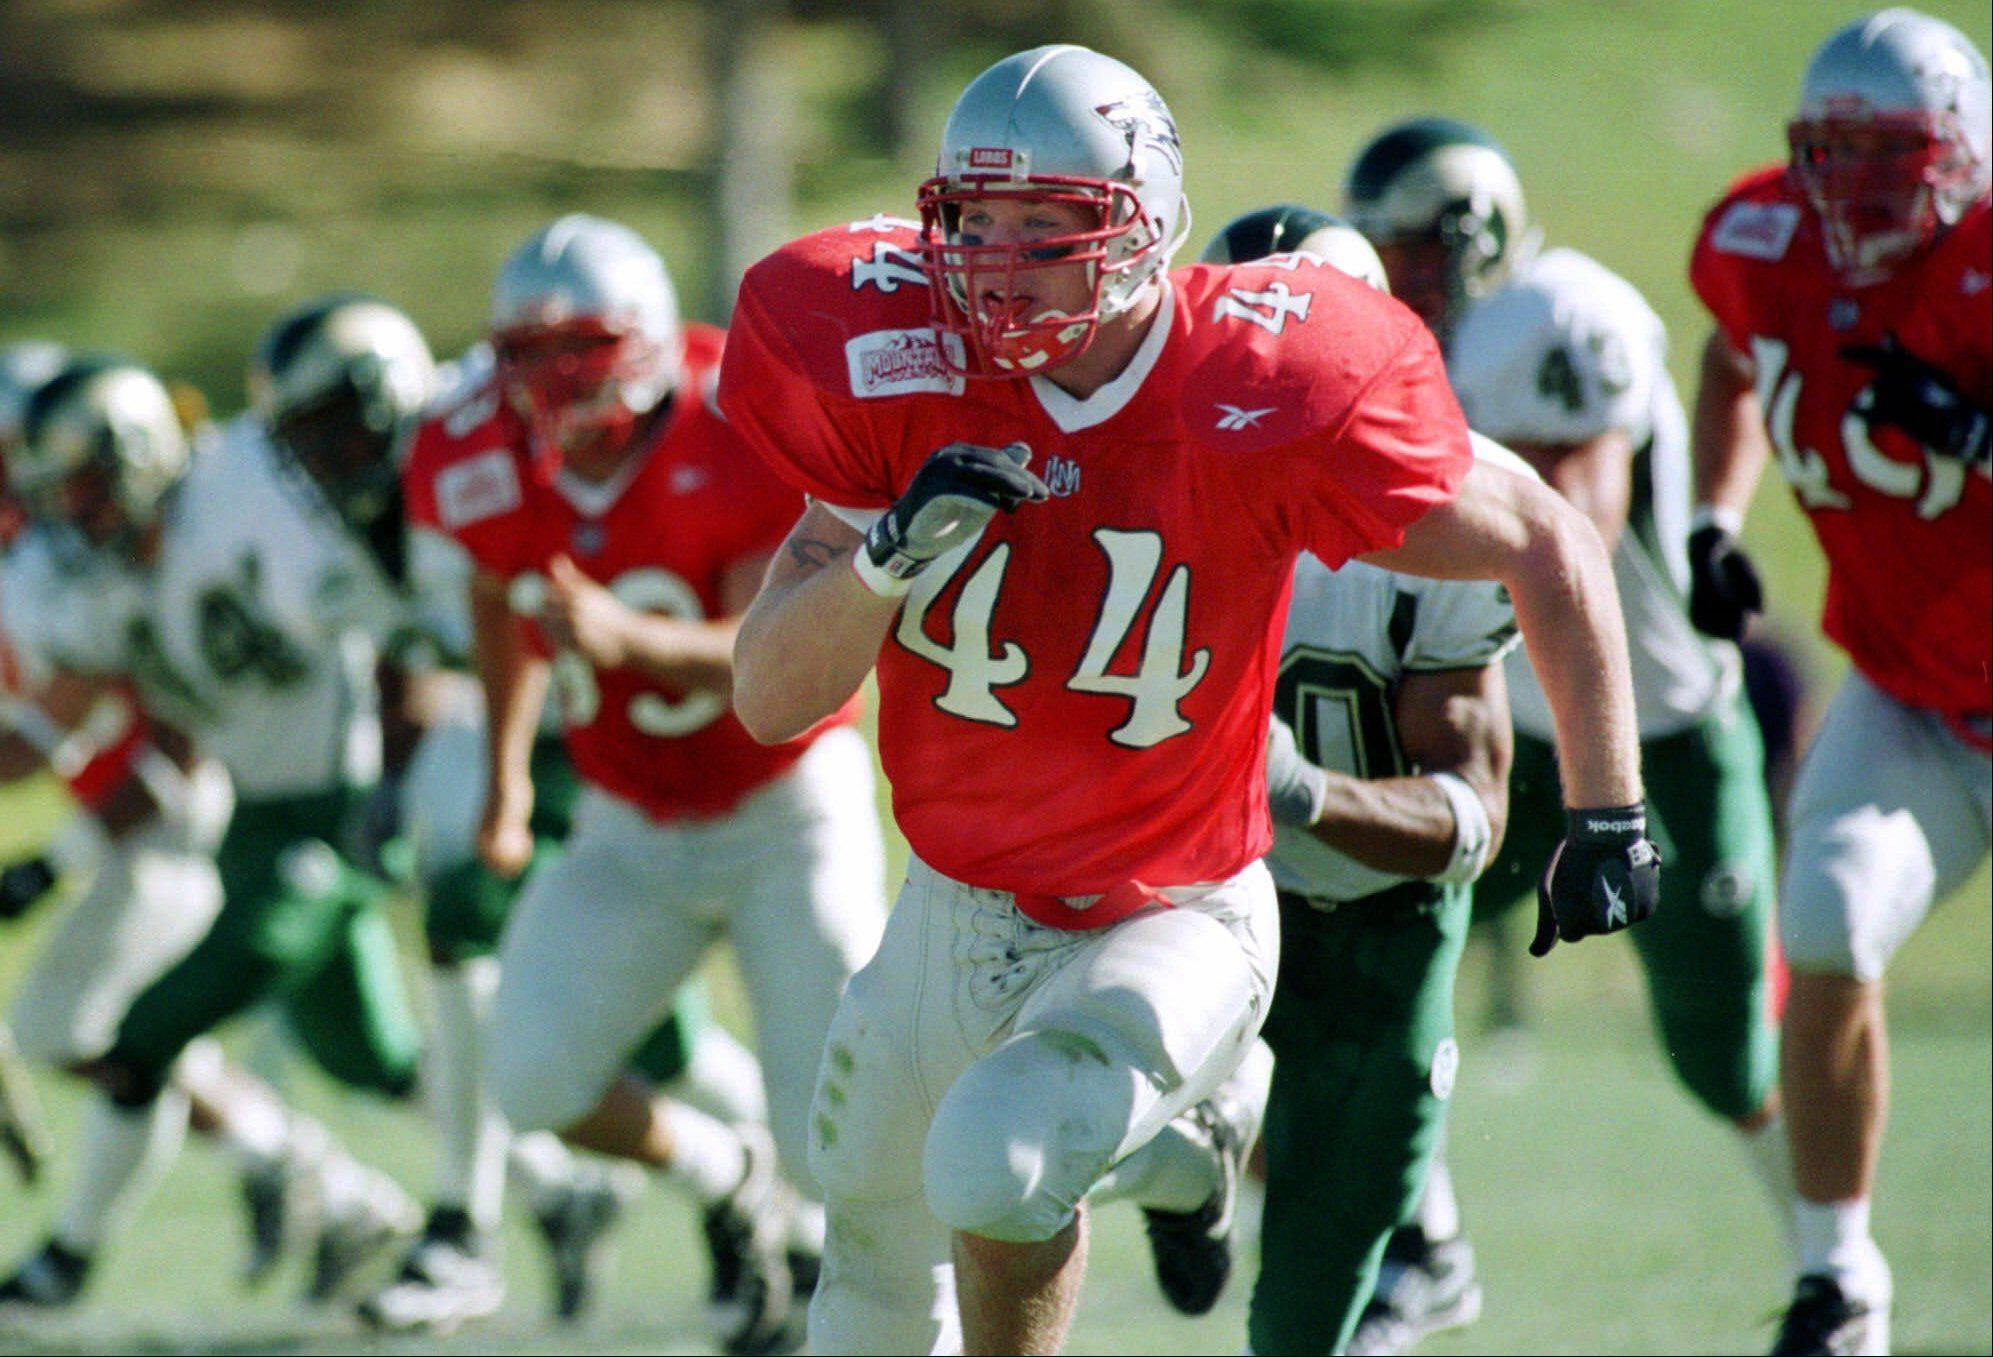 New Mexico's Brian Urlacher (44) leads the charge downfield during punt coverage by UNM against Colorado State on Saturday, Nov. 6, 1999 at University Stadium in Albuquerque, N.M. Urlacher, who plays both offense and defense for UNM, will be a probable first round NFL draft choice and could be the highest draft pick ever out of UNM.